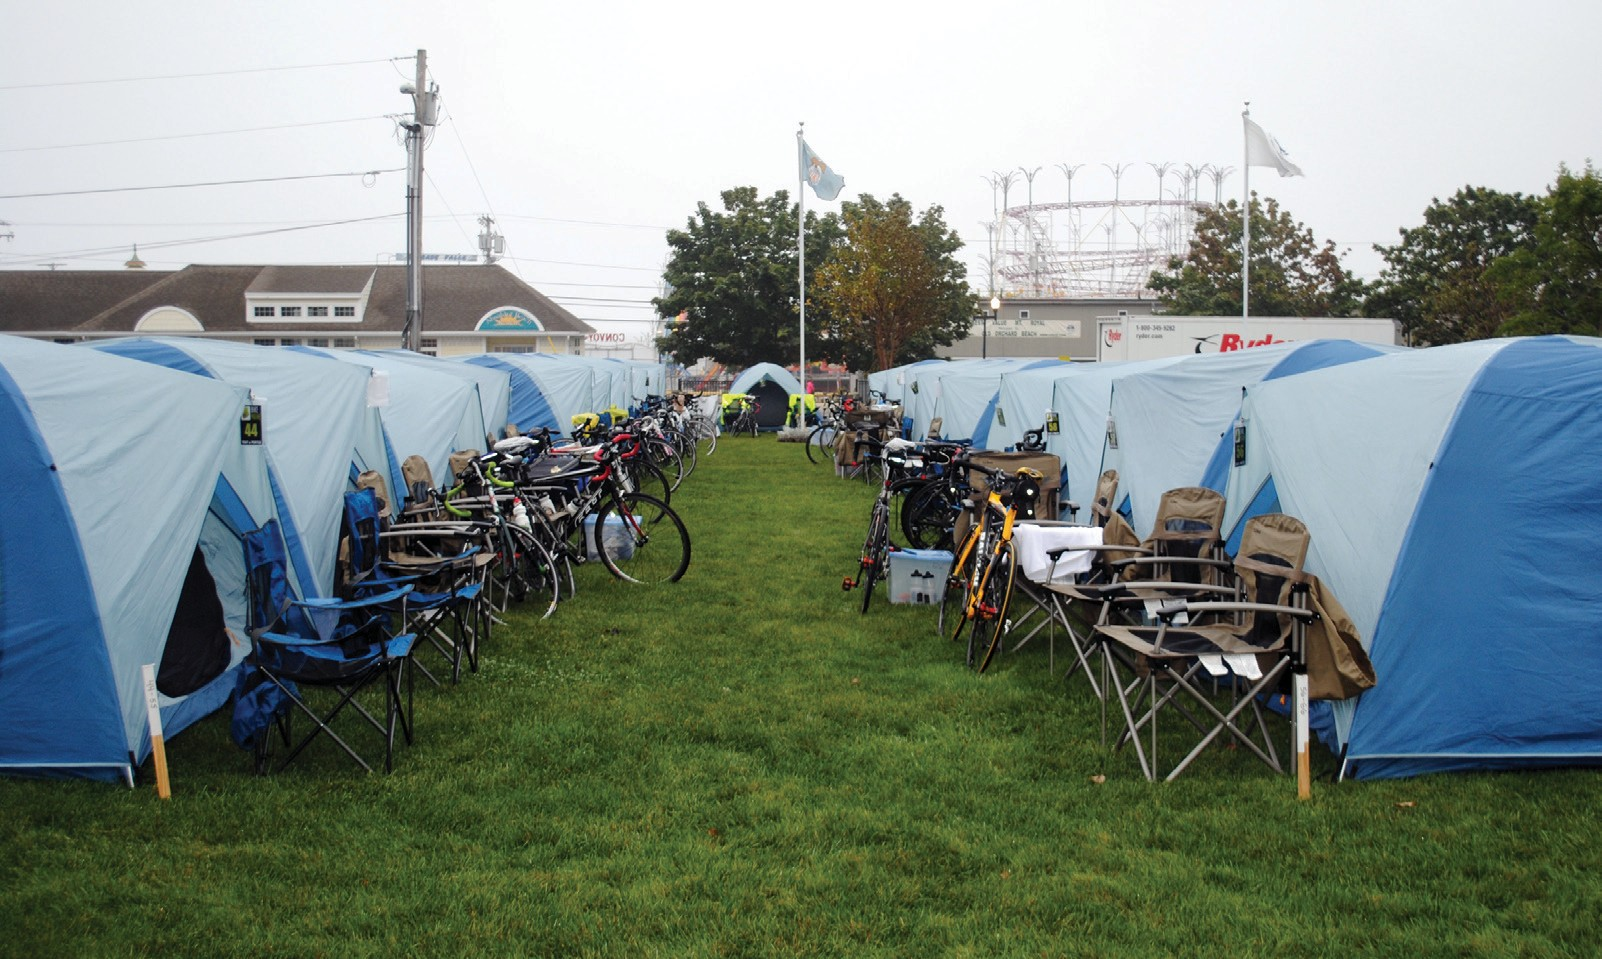 Tents are set up Sunday at Veterans Memorial Park in Old Orchard Beach, housing BikeMaine cyclists for the night.